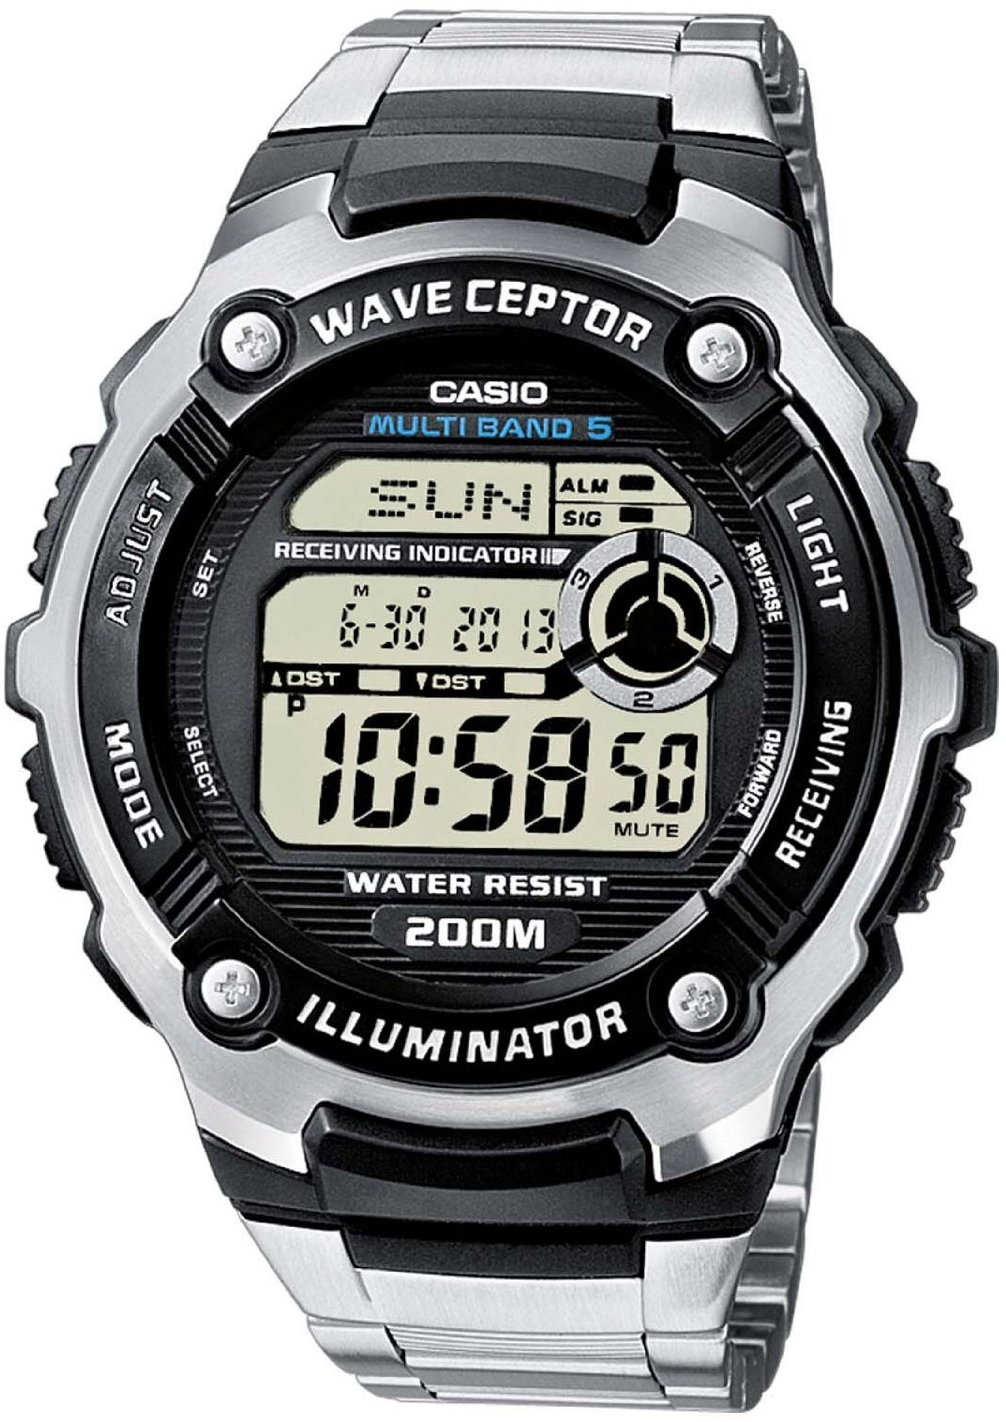 Casio Wave Ceptor WV-200DE-1A casio часы casio wv 200e 2a коллекция wave ceptor